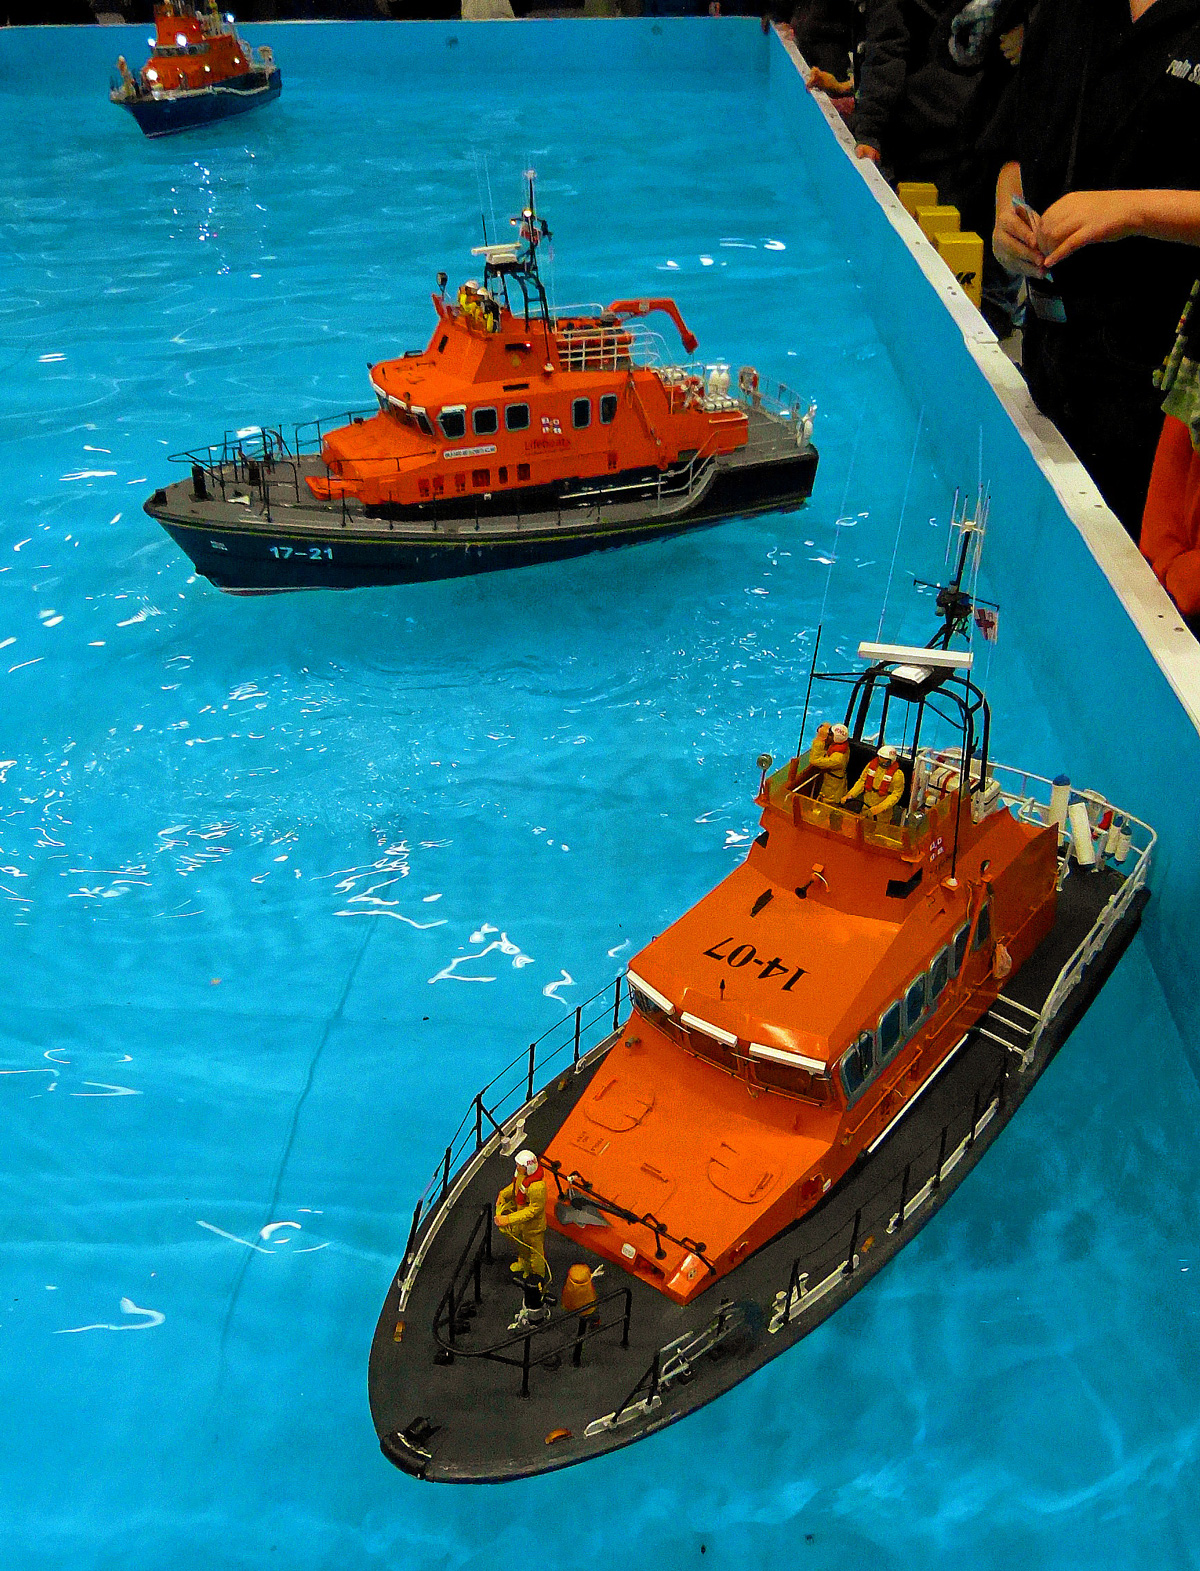 Model RNLI boats on the pool